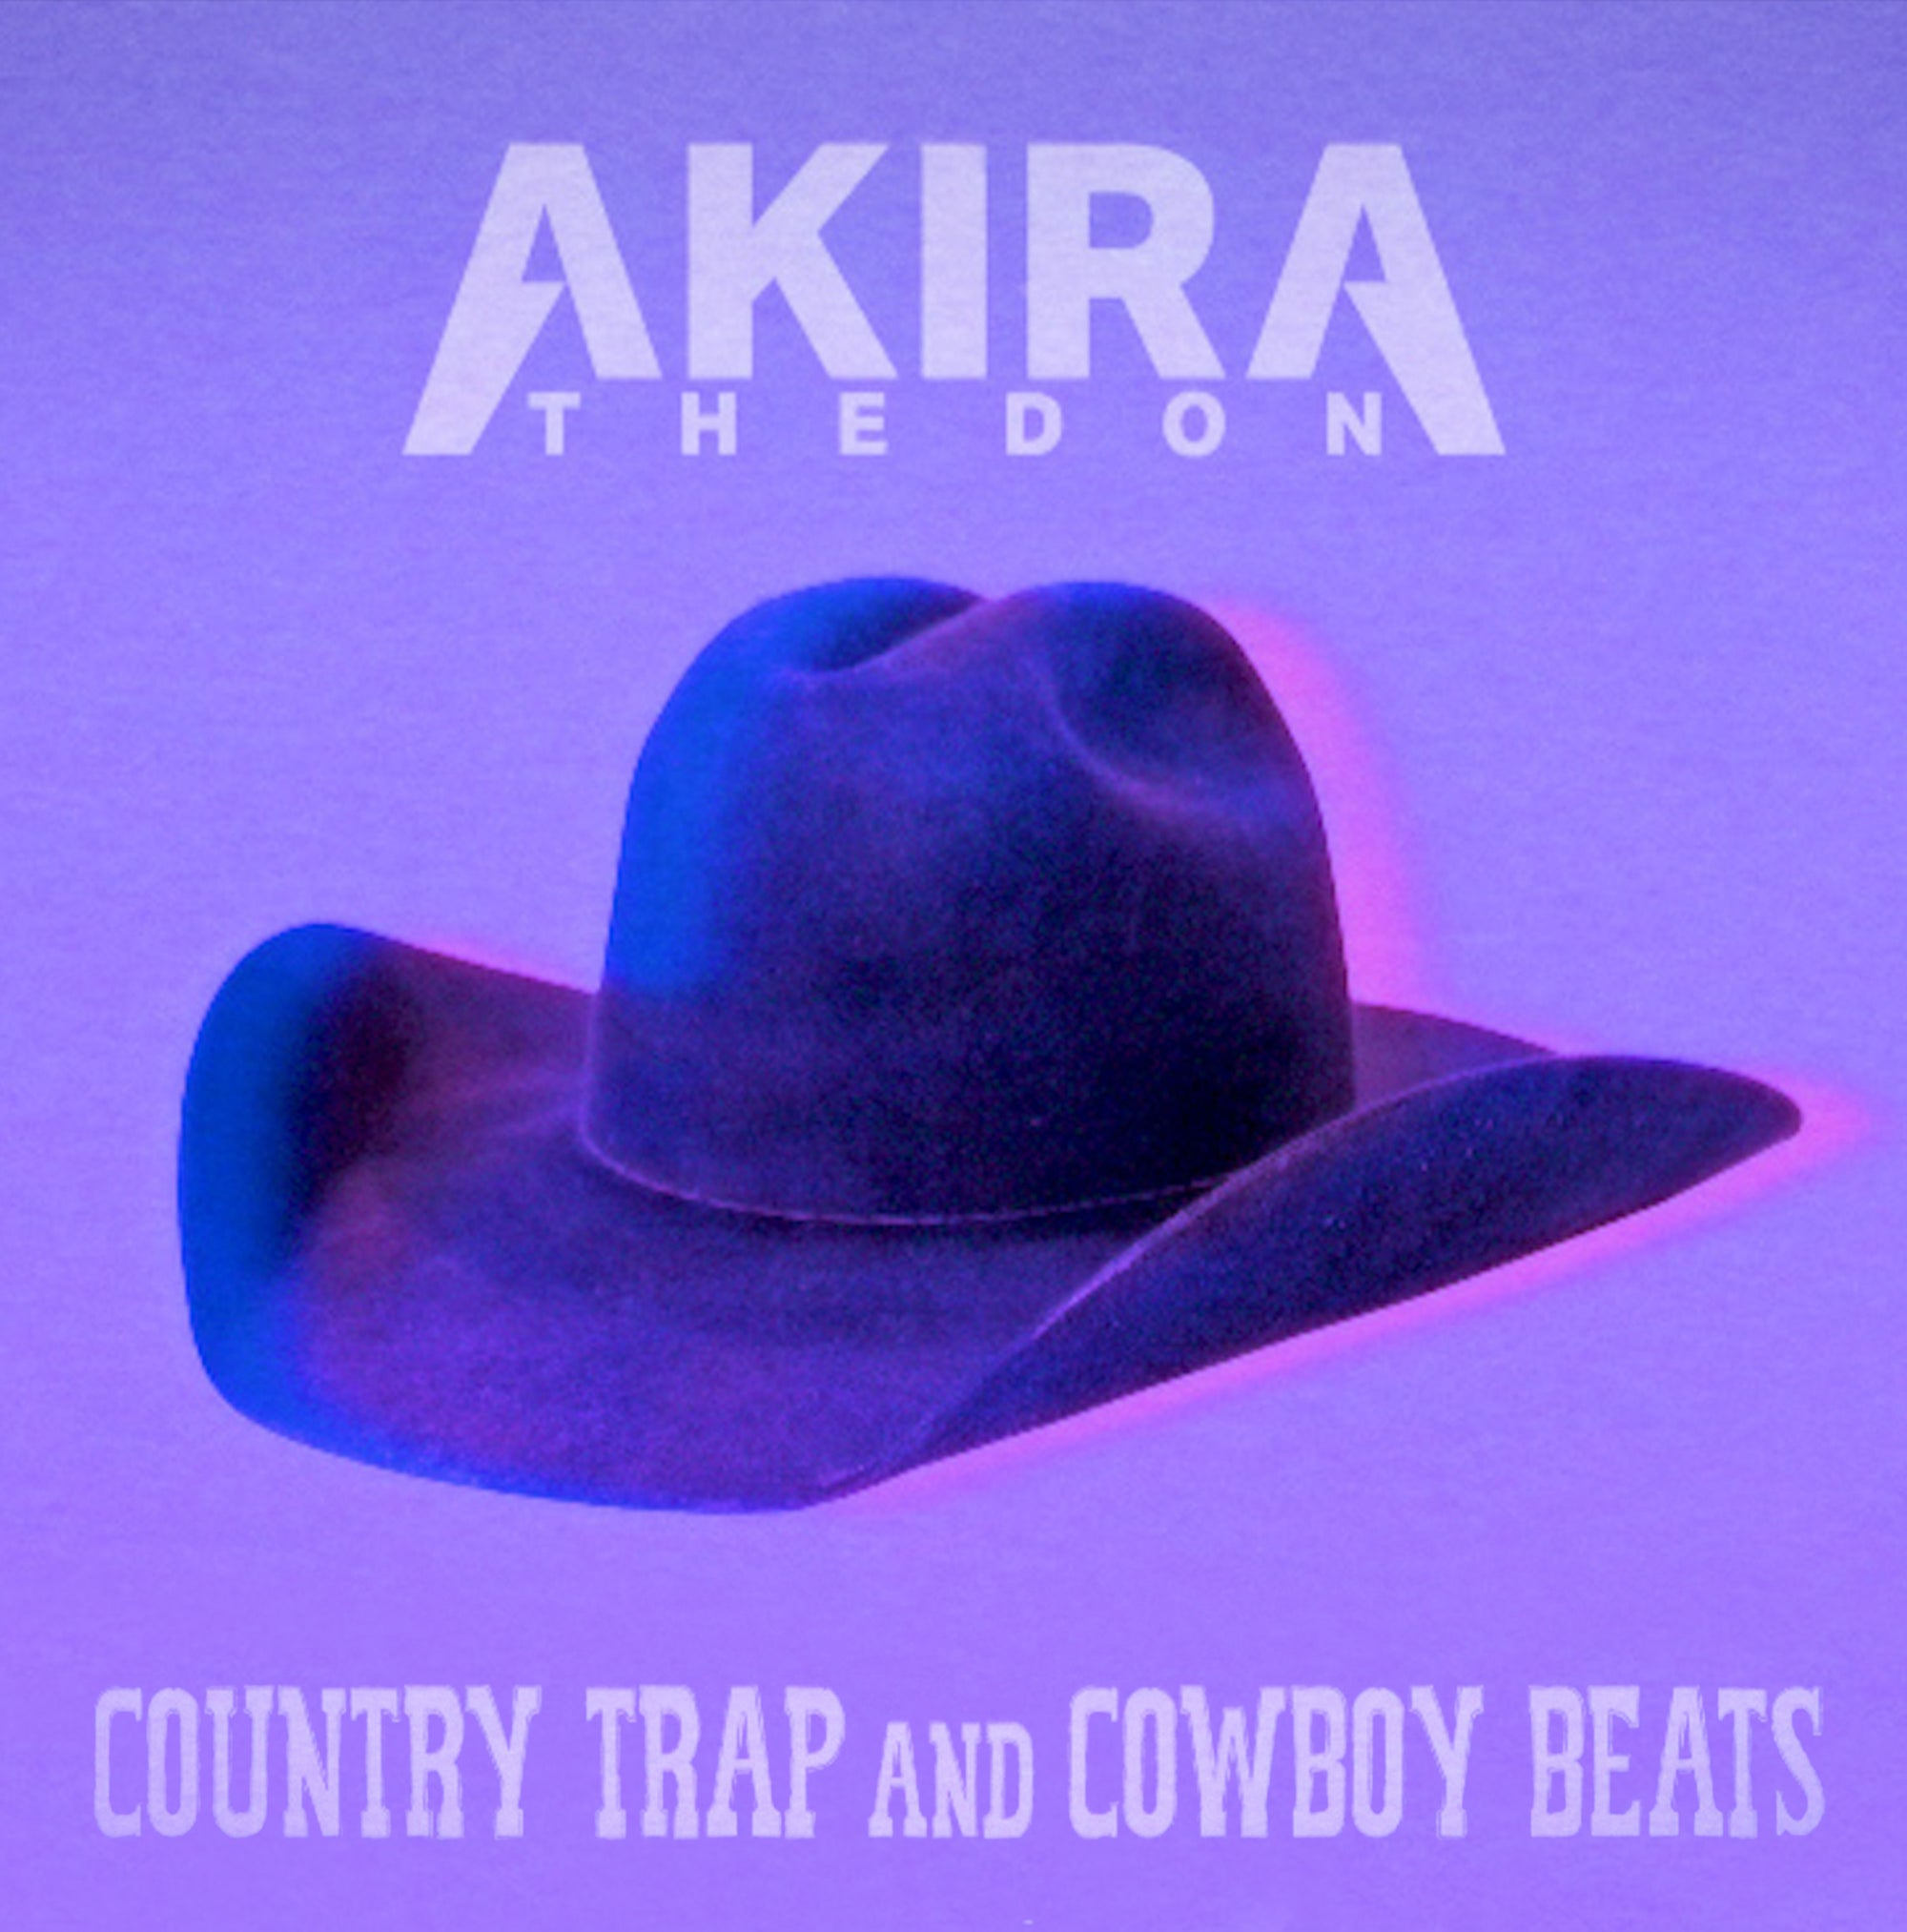 COUNTRY TRAP & COWBOY BEATS | Sample Pack & Drum Kit